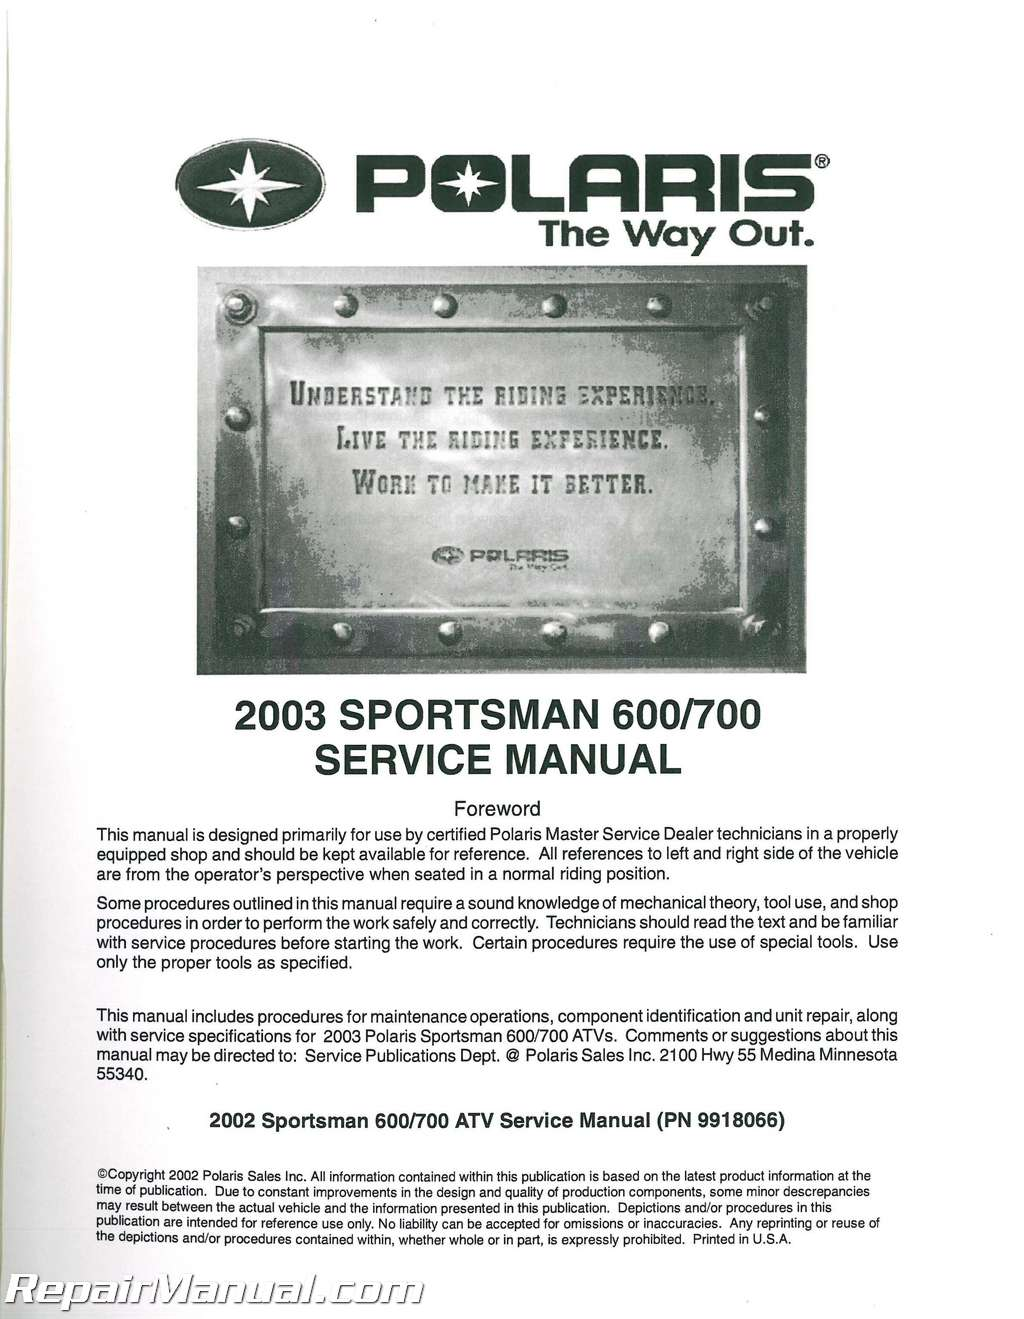 polaris sportsman 700 twin 600 atv 2003 2002 service manual factory repairmanual repair manual001